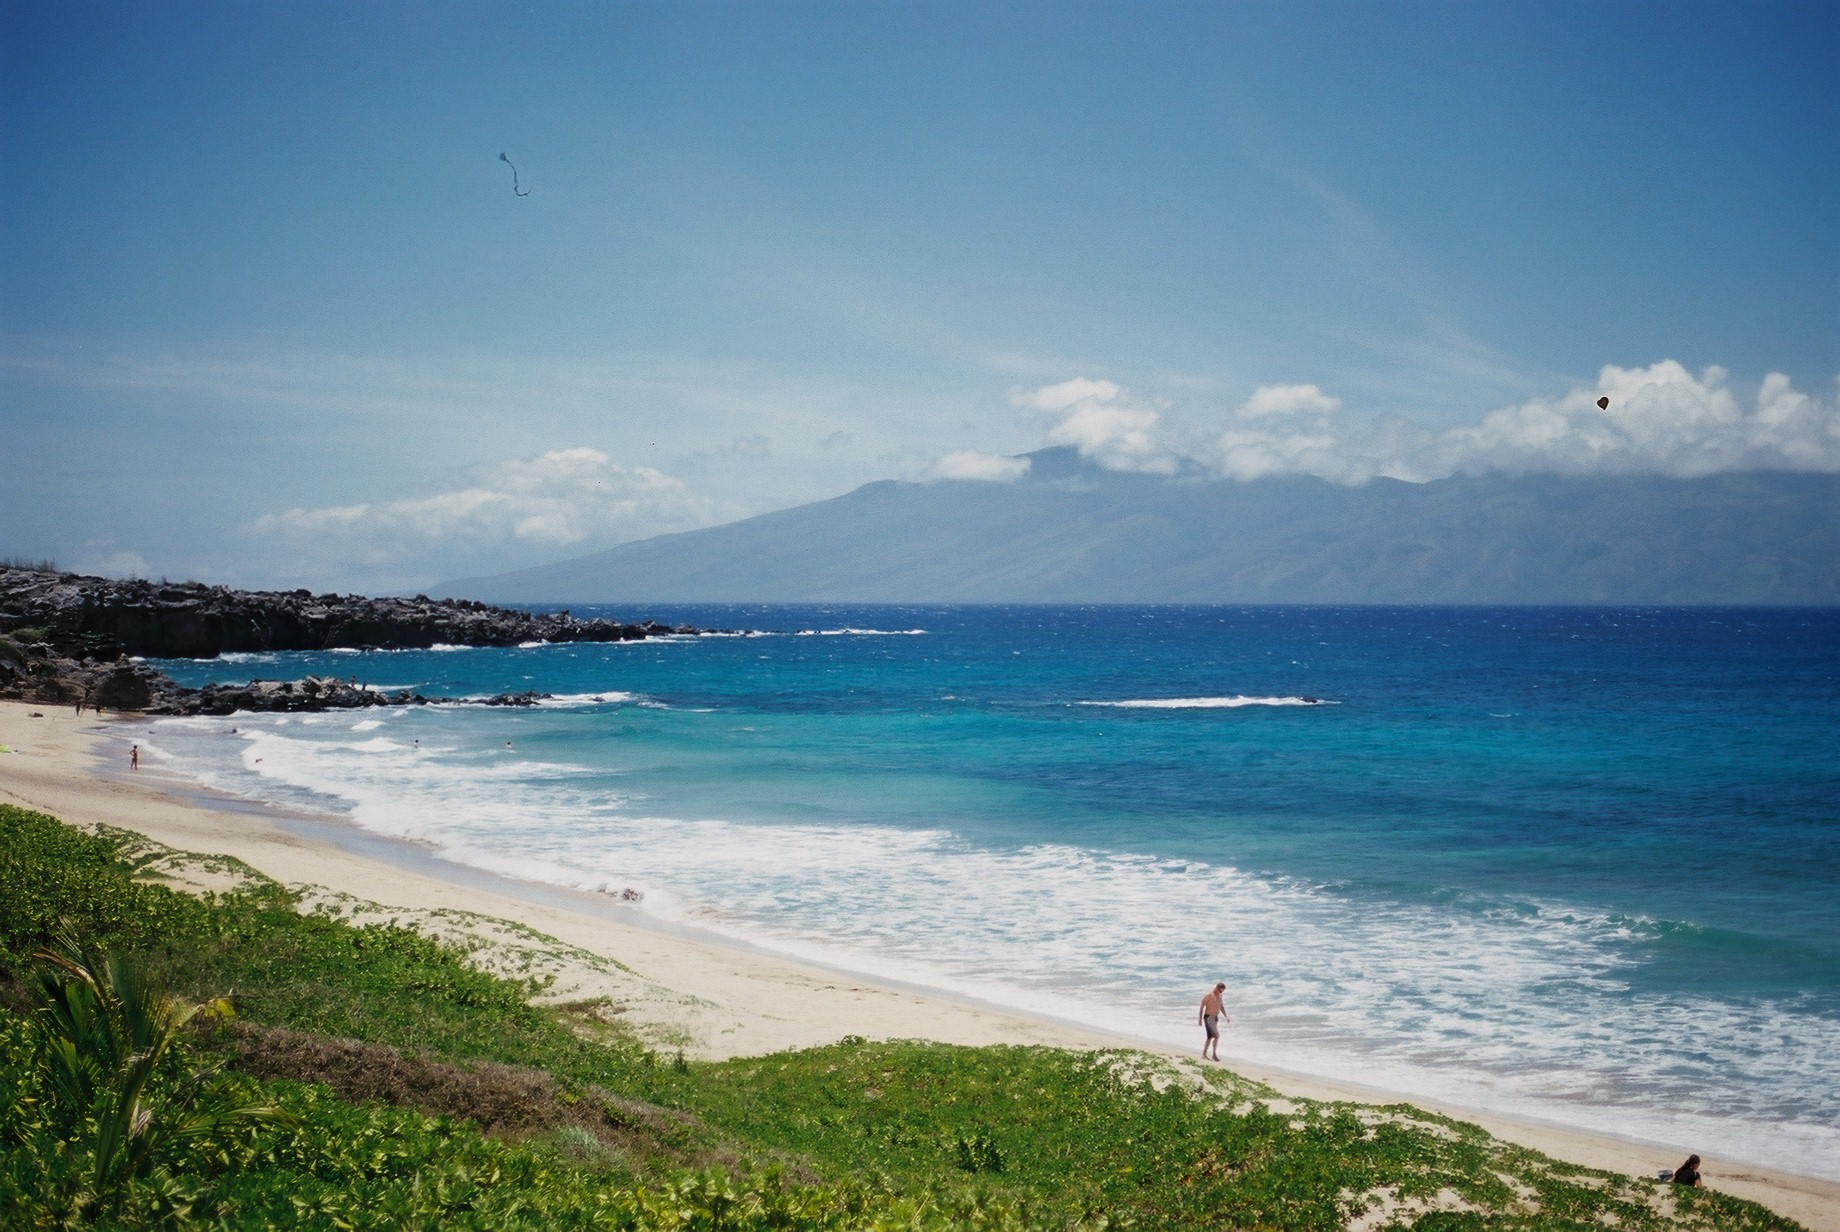 Kapalua Beach in Maui by Ryan Hines | Discover the 10 best things to do in Maui with these insider tips from an ex-resident. #maui #travel #hawaii